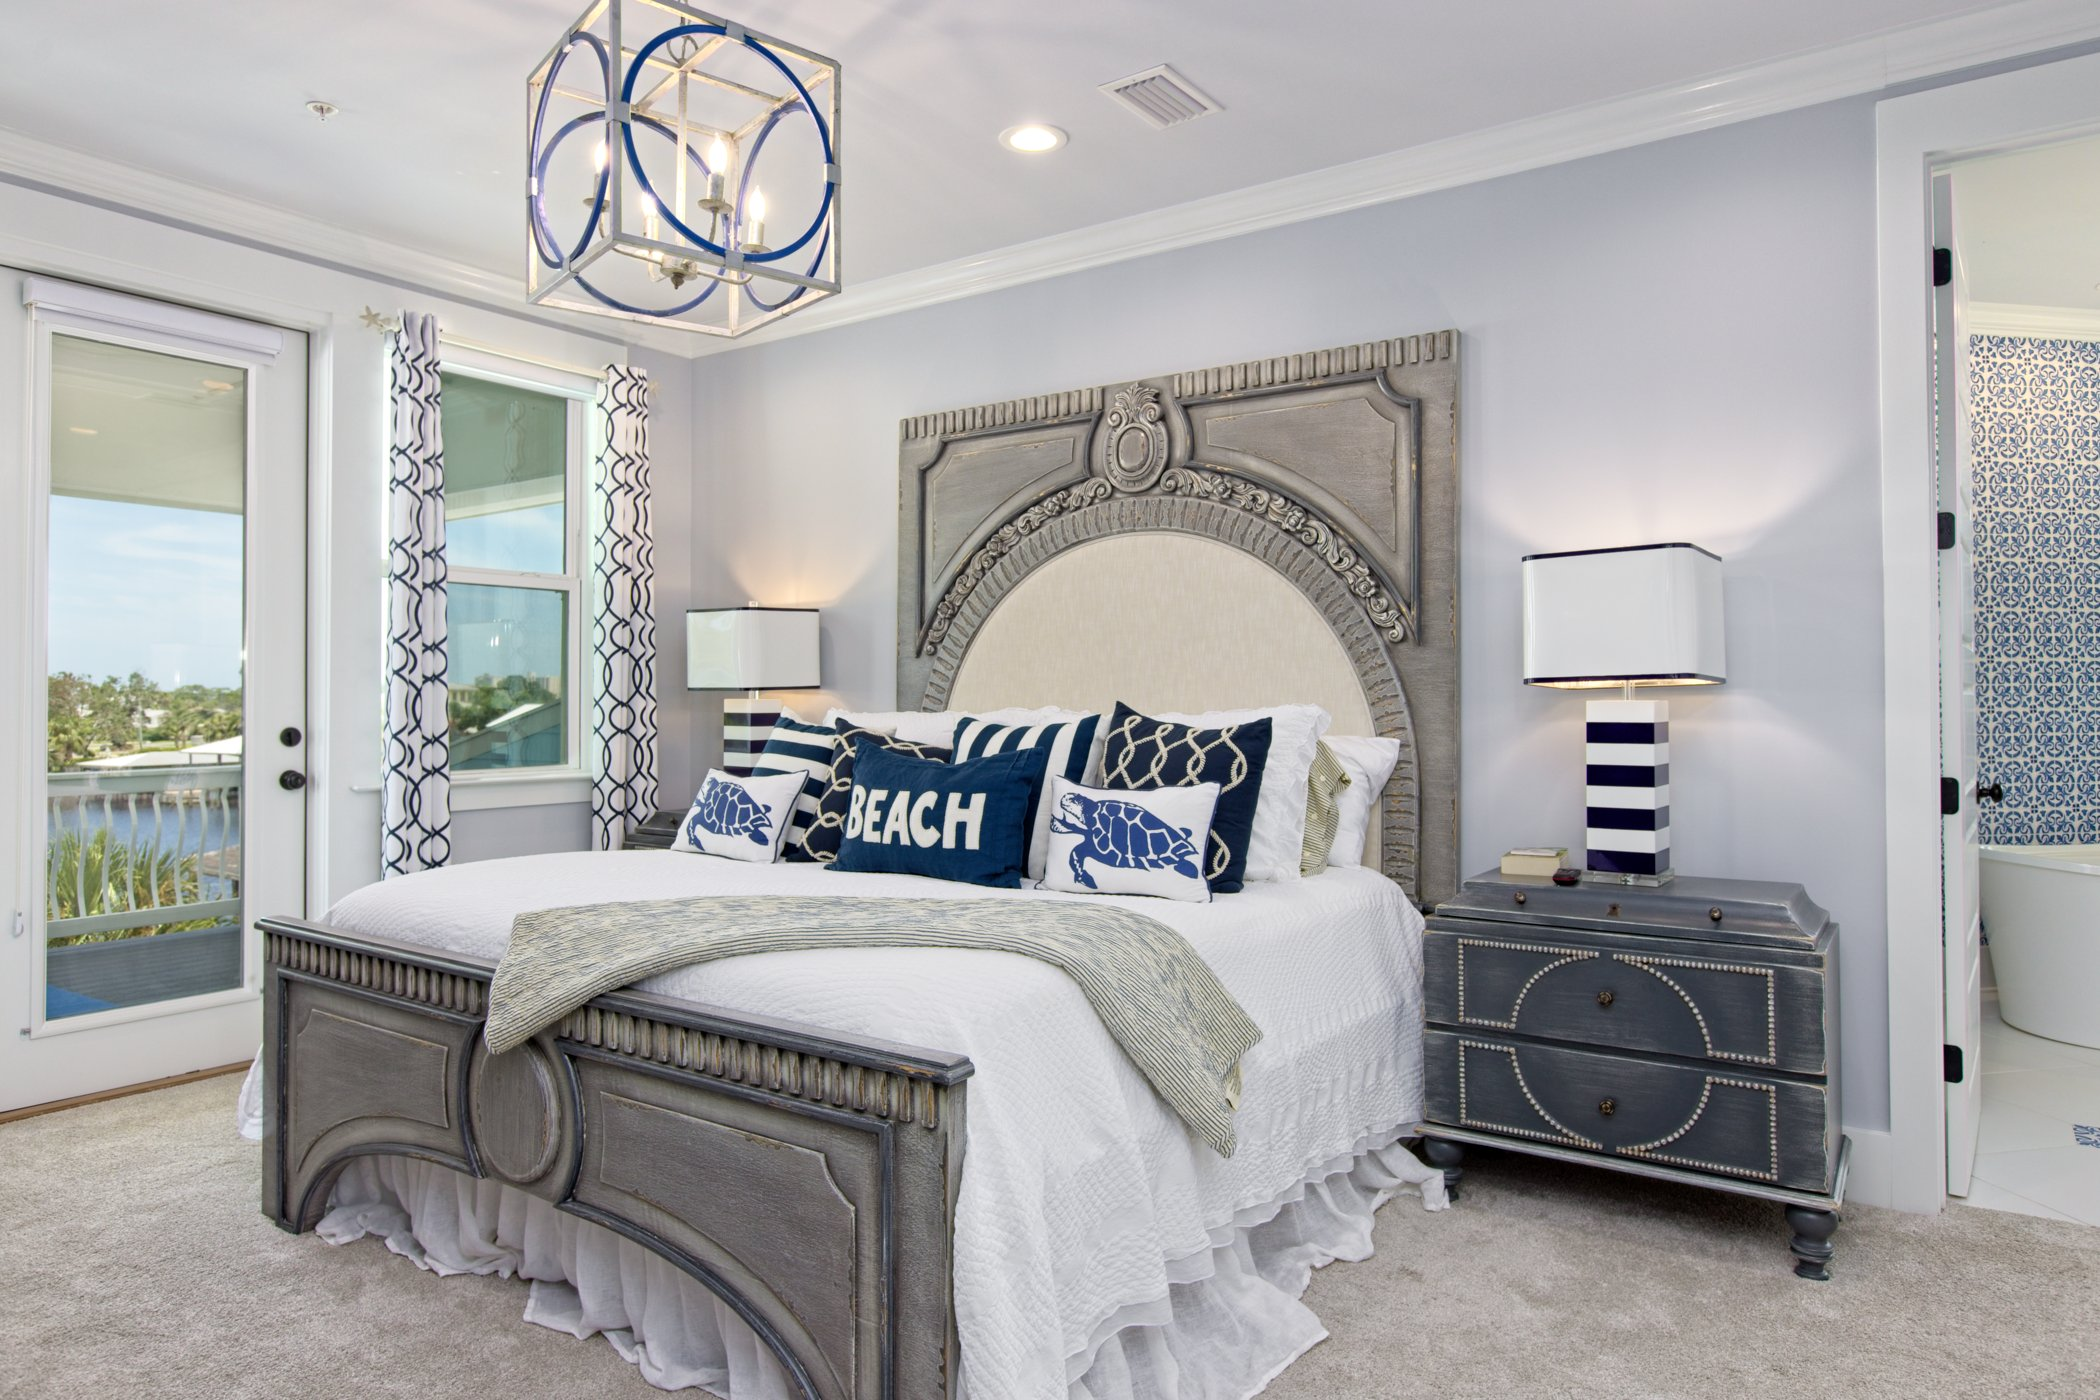 Magnificent Master Bedroom with Balcony access